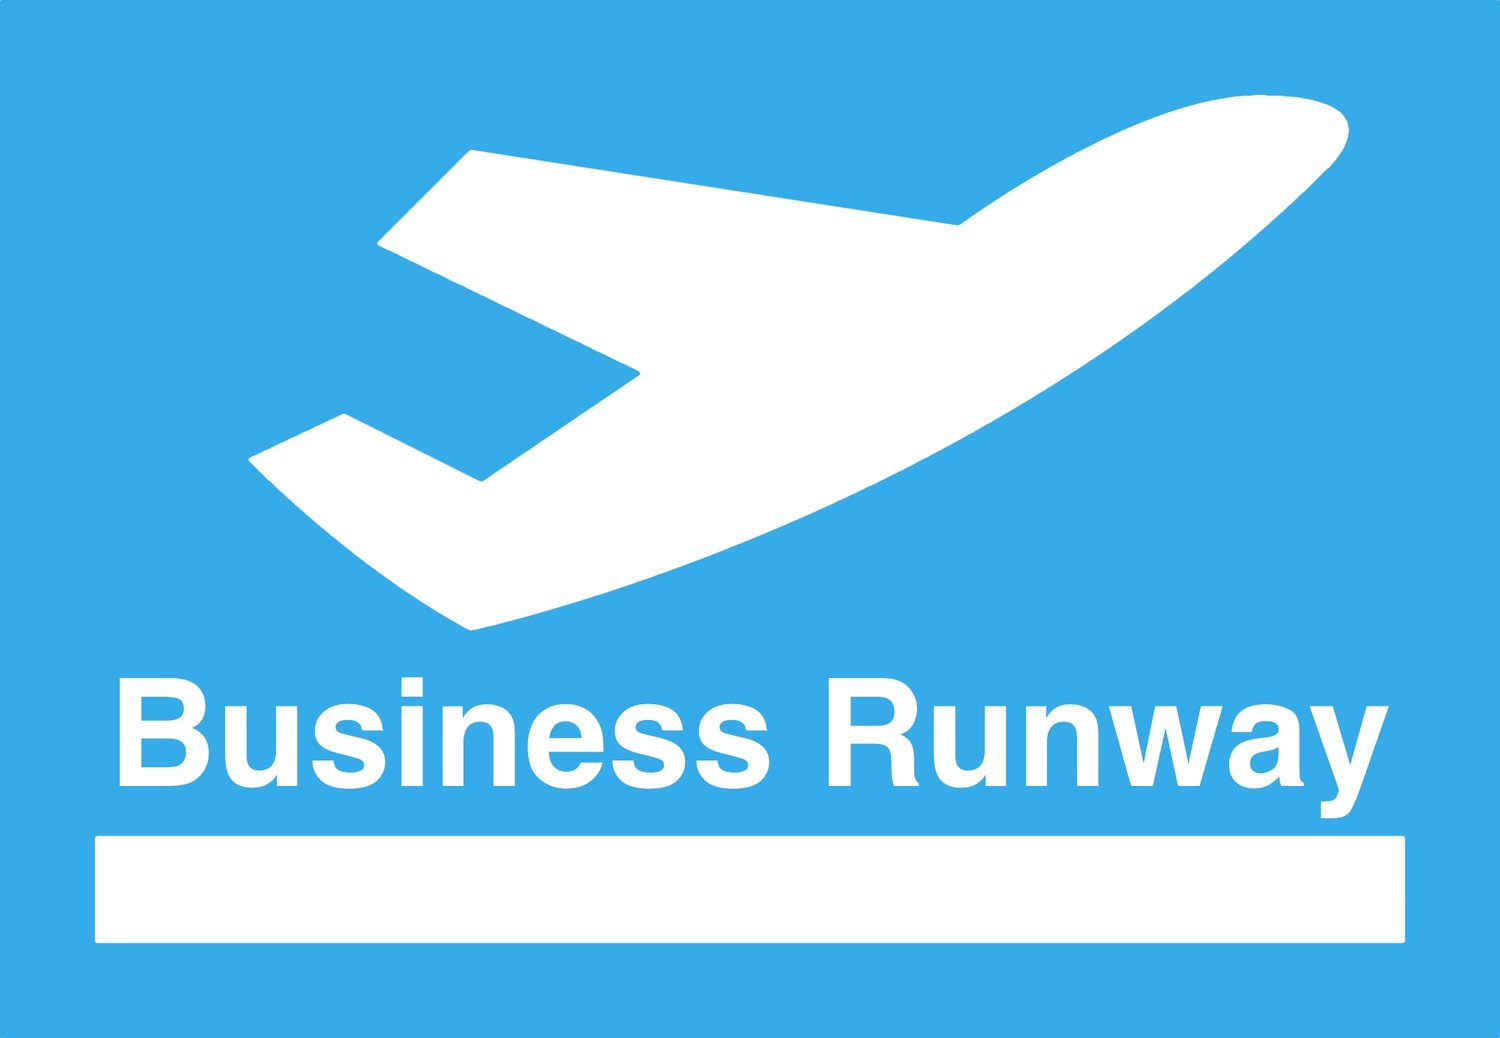 Business Runway